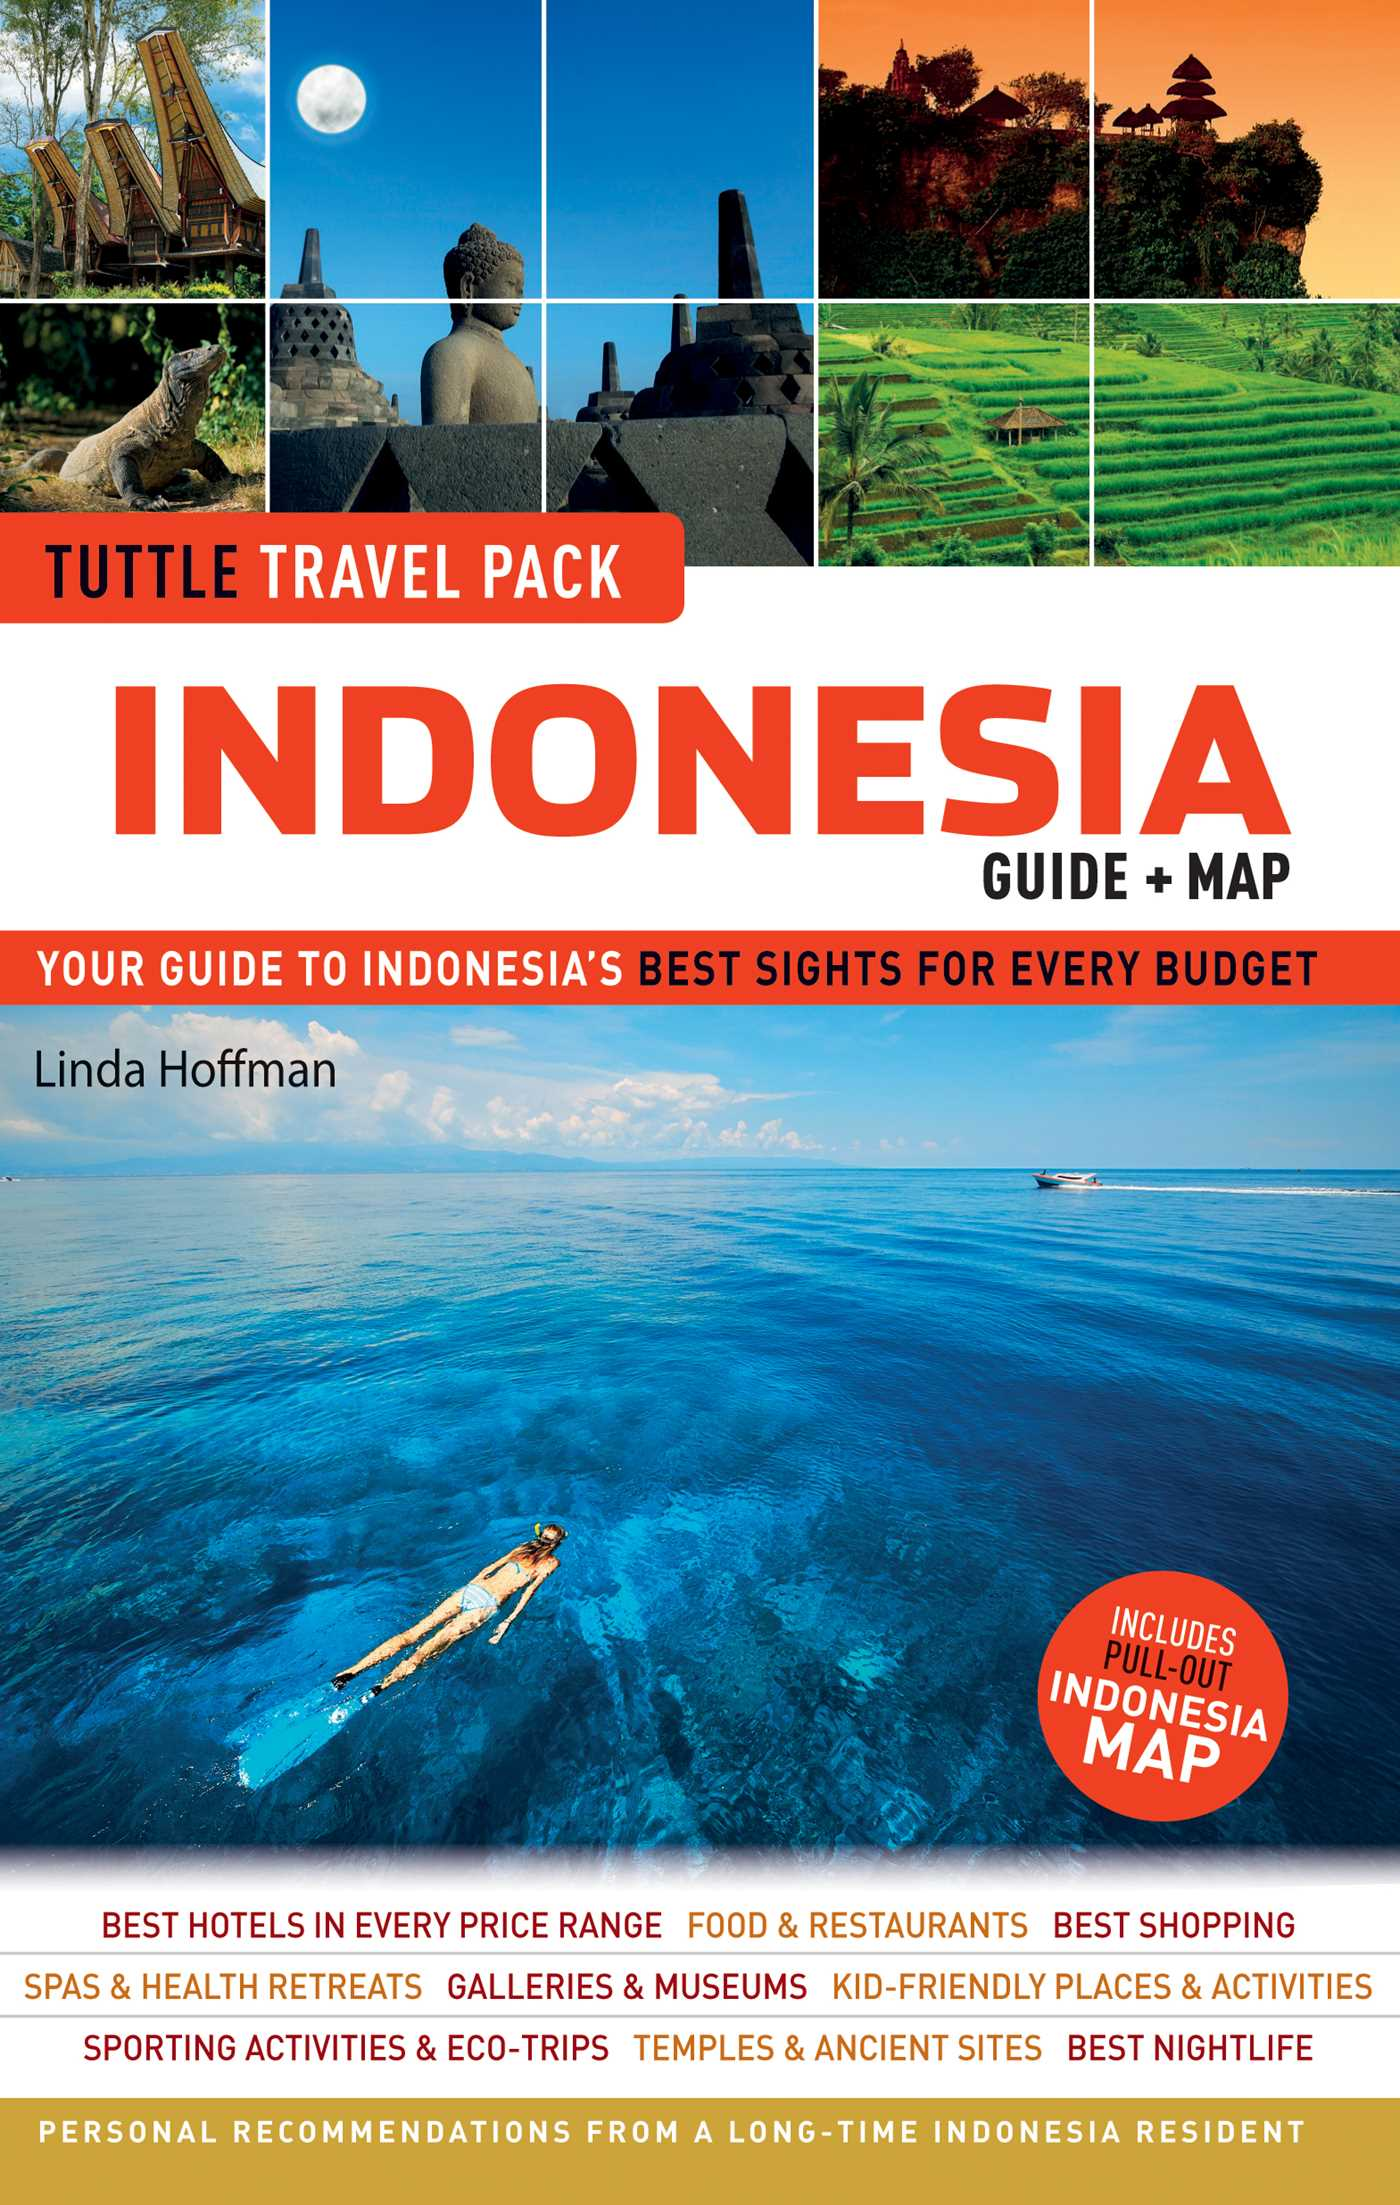 Indonesia-tuttle-travel-pack-9780804842129_hr